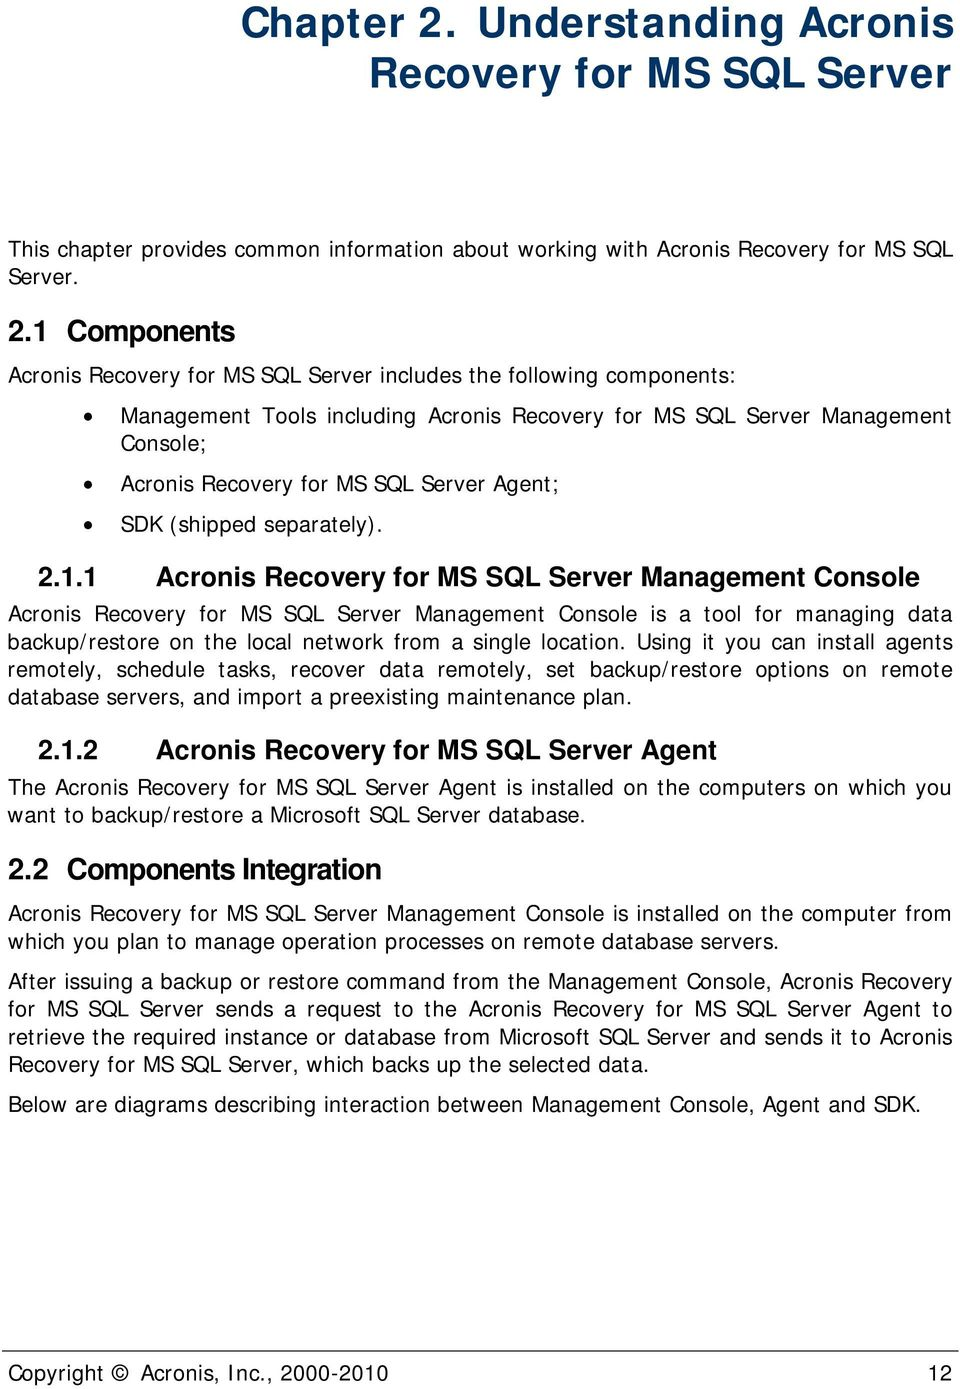 1 Components Acronis Recovery for MS SQL Server includes the following components: Management Tools including Acronis Recovery for MS SQL Server Management Console; Acronis Recovery for MS SQL Server